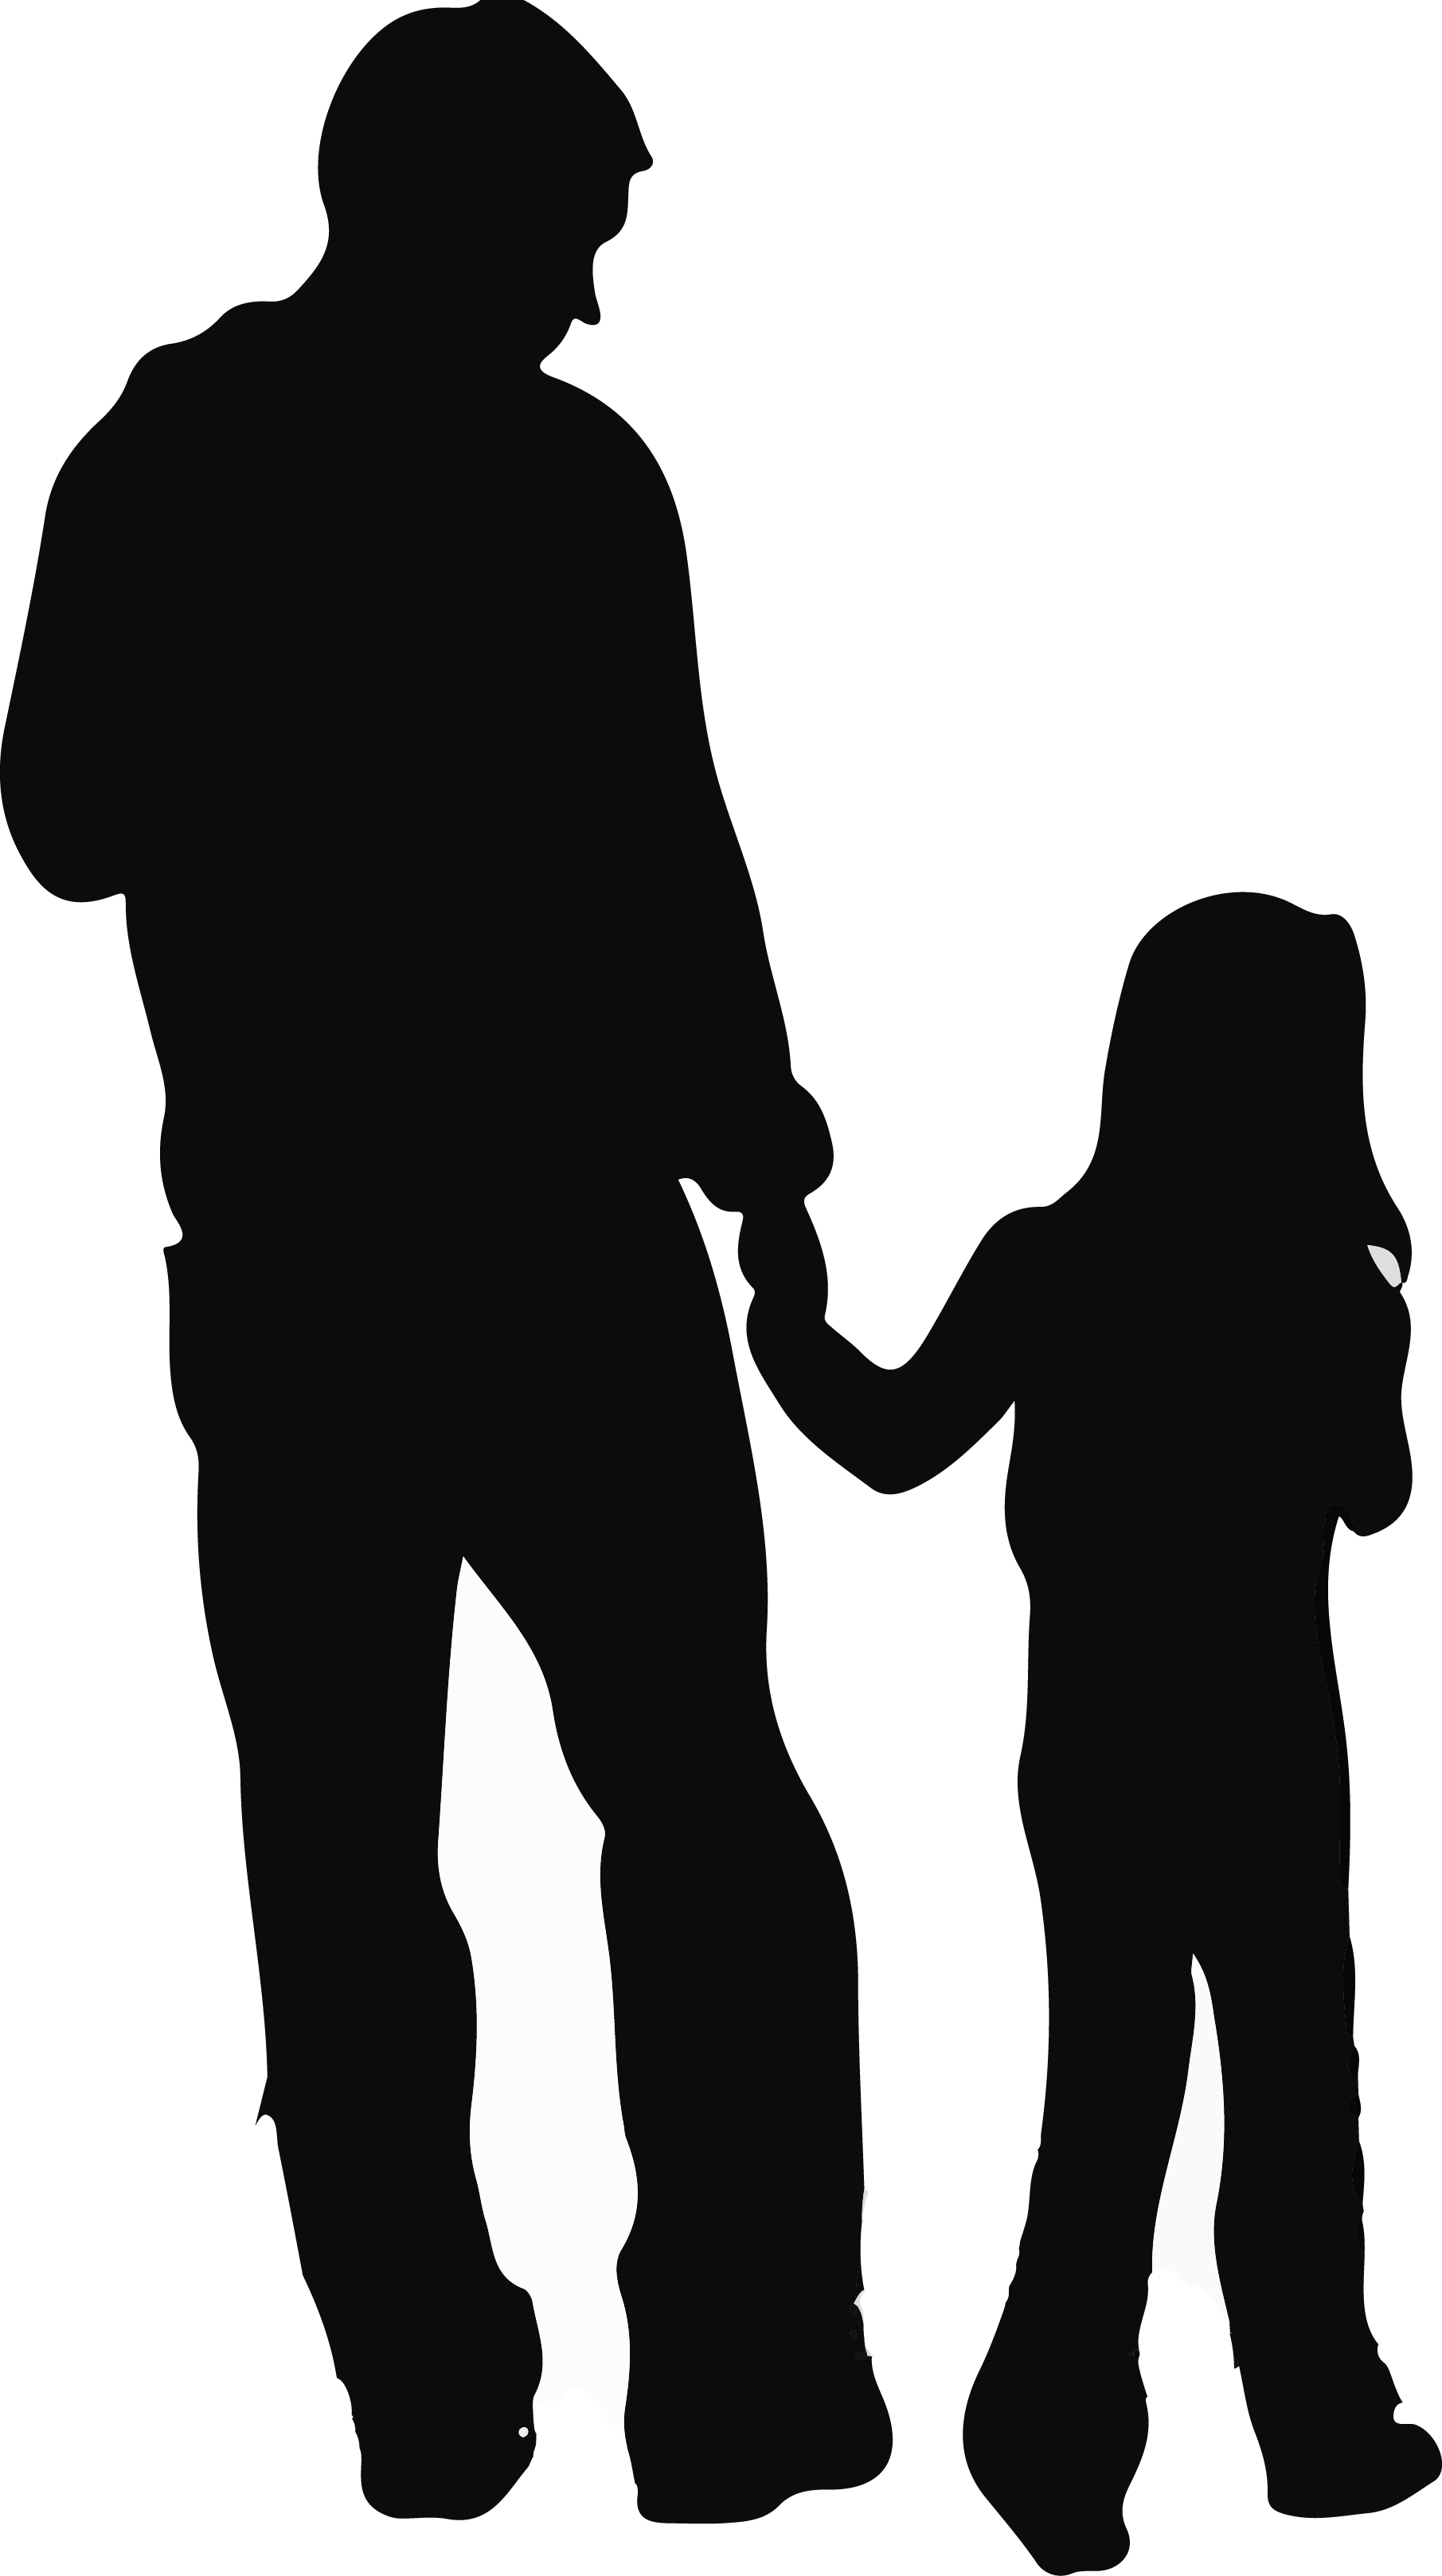 father silhouette fathers day 2012 my autistic muslim child father silhouette